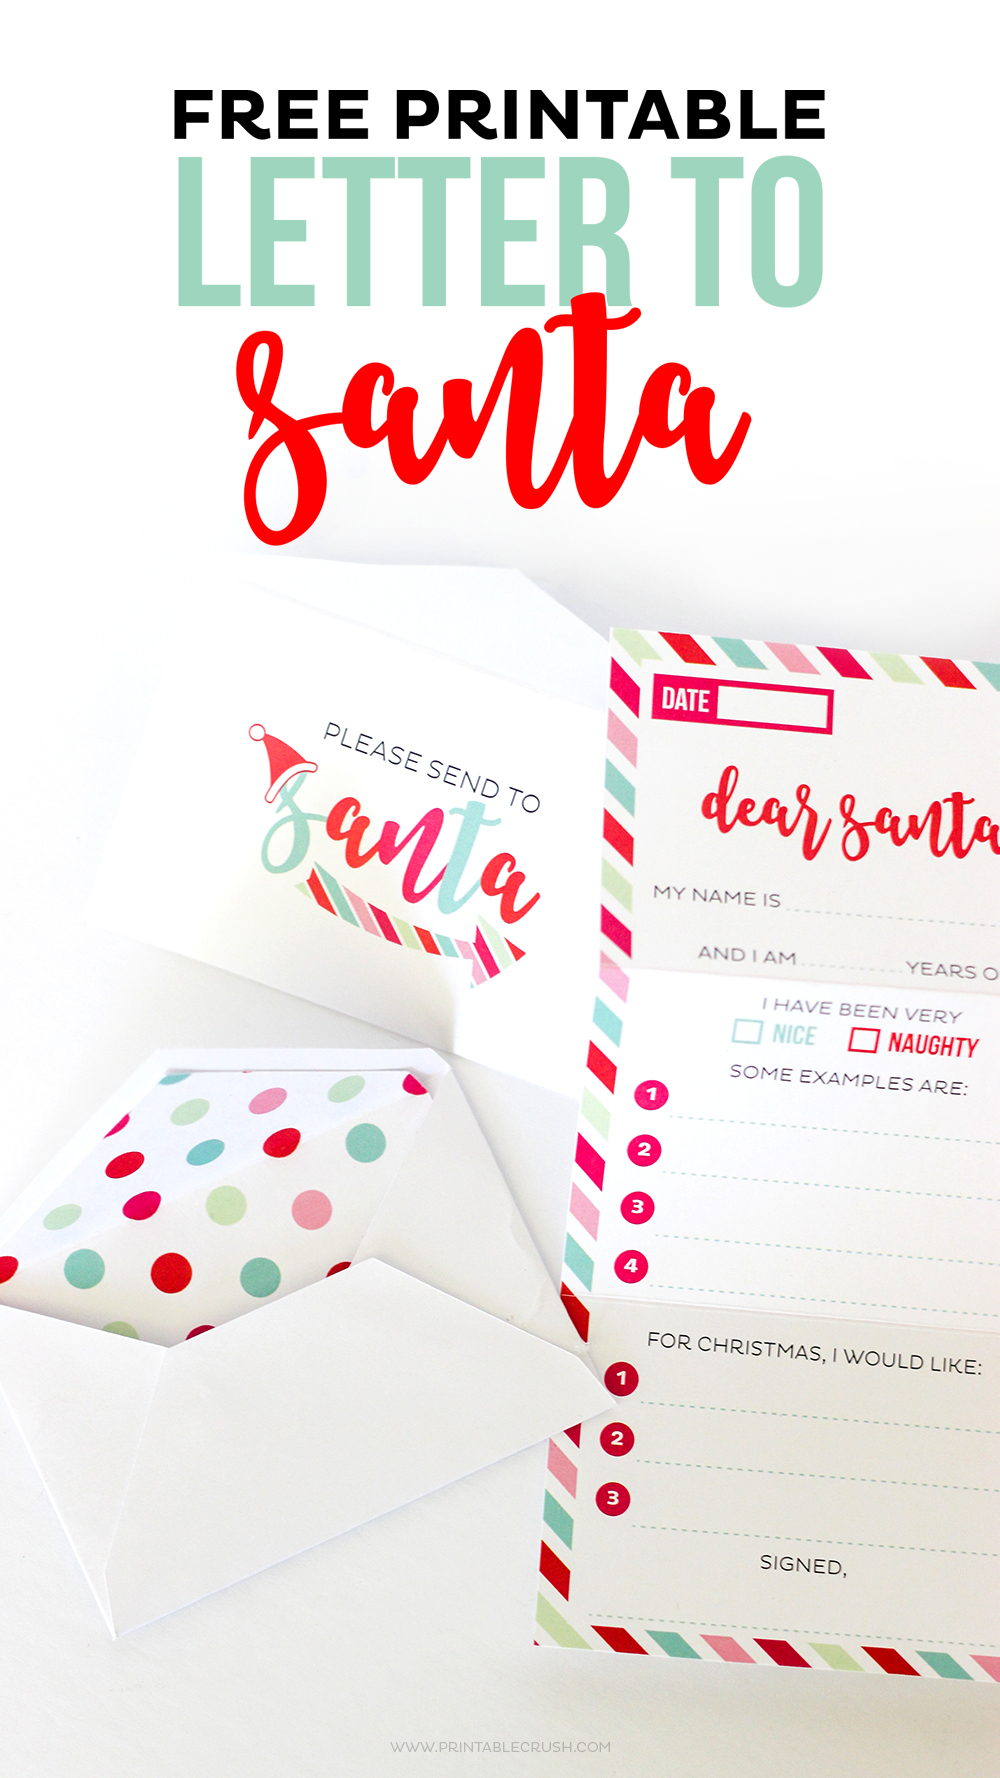 This Adorable FREE Santa Letter Printable Set Includes A Tri Fold Letter,  Envelope,